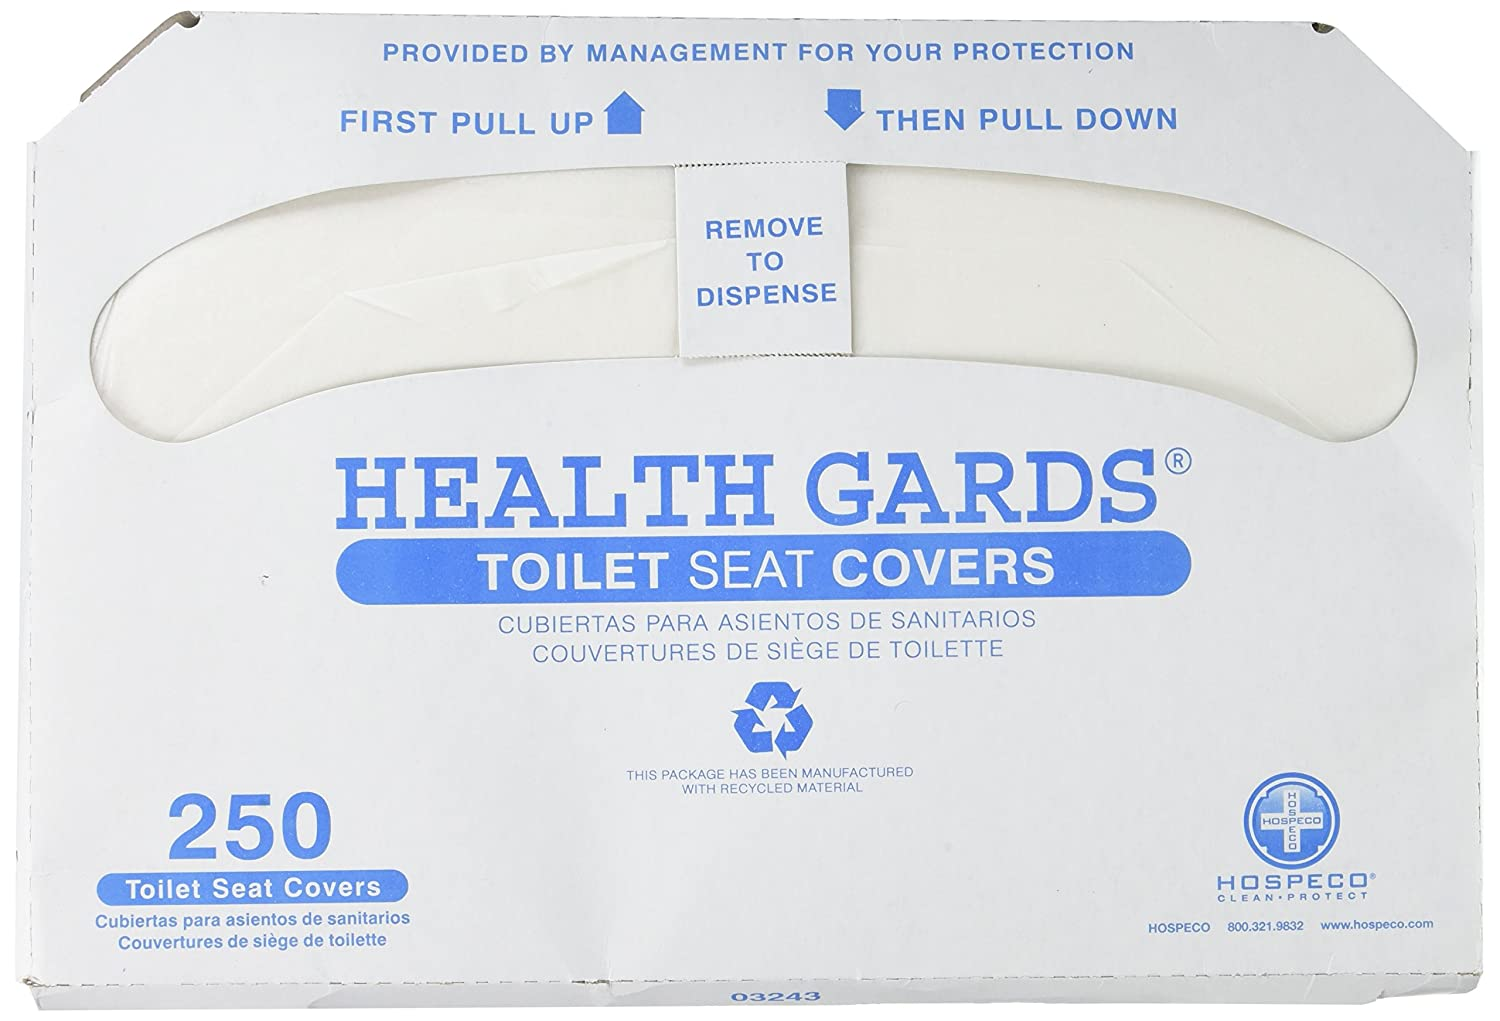 Health Gards Toilet Seat Covers - 250 Covers per Box 50%OFF